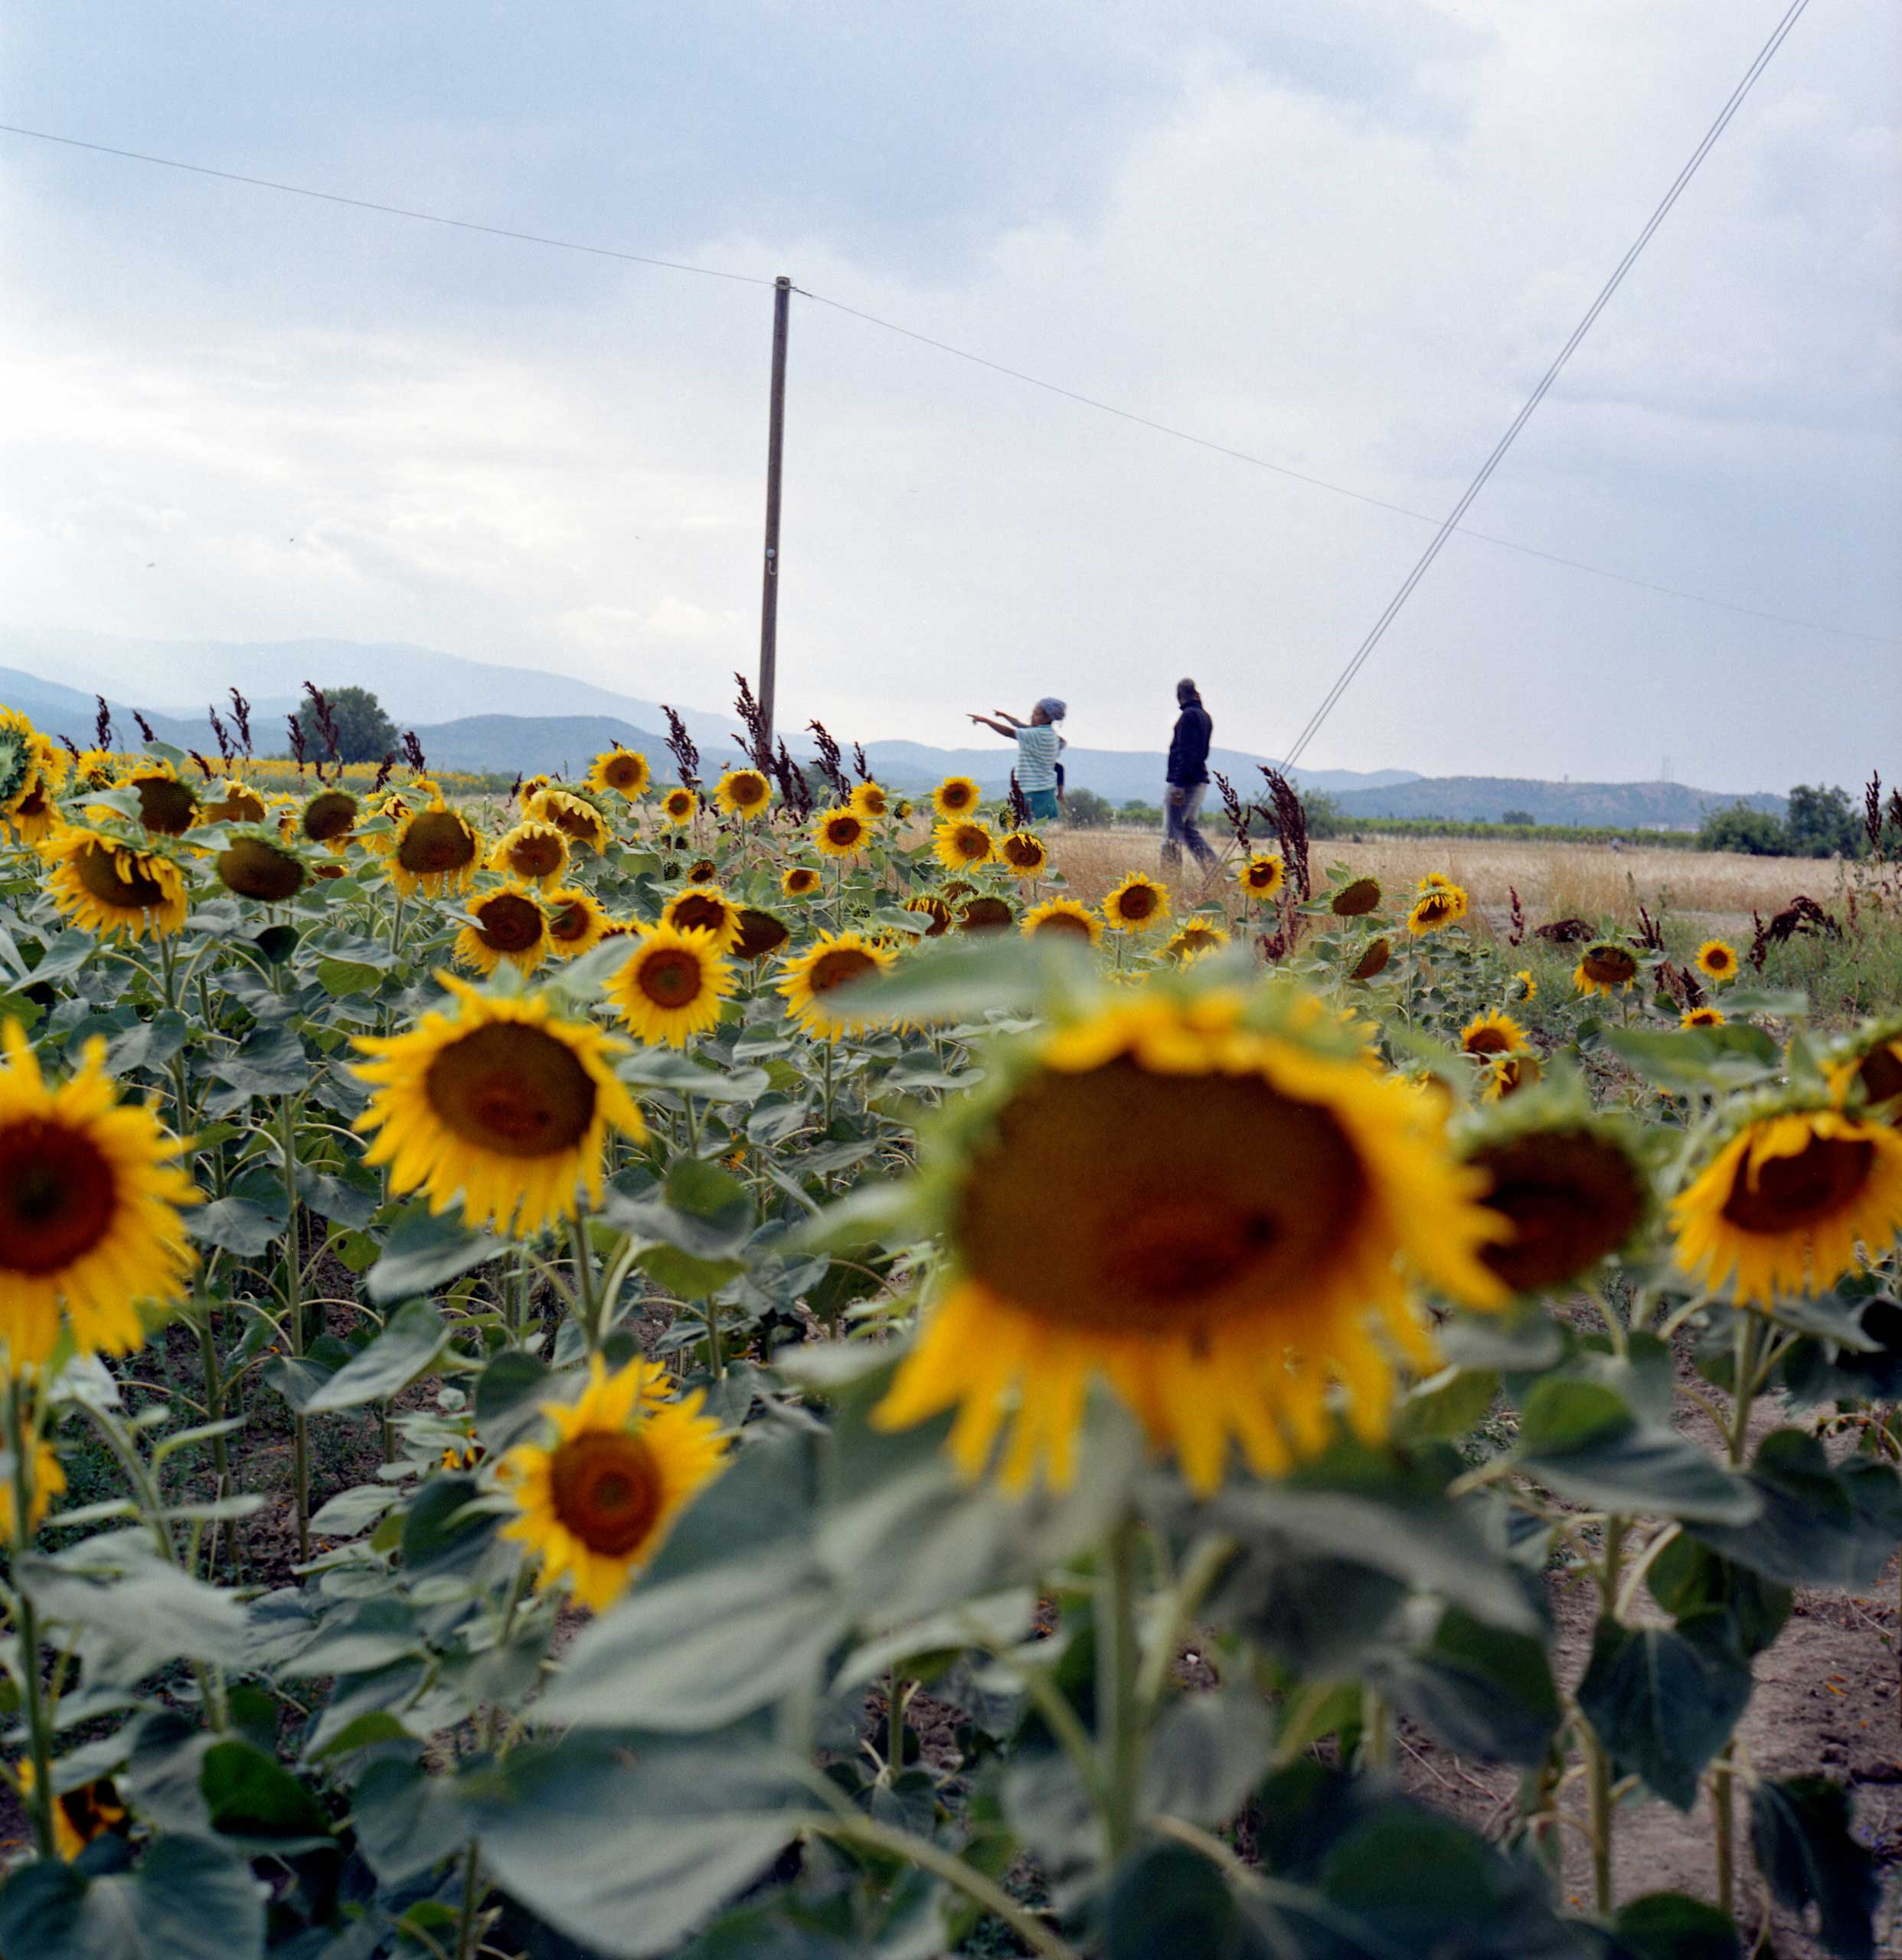 Migrant family from South Sudan walking in the sunflower field in Idomeni, a crossing point between Greece and Macedonia where roughly around 400 migrants per day wait at the border for a chance to cross. Greece, June 2015.